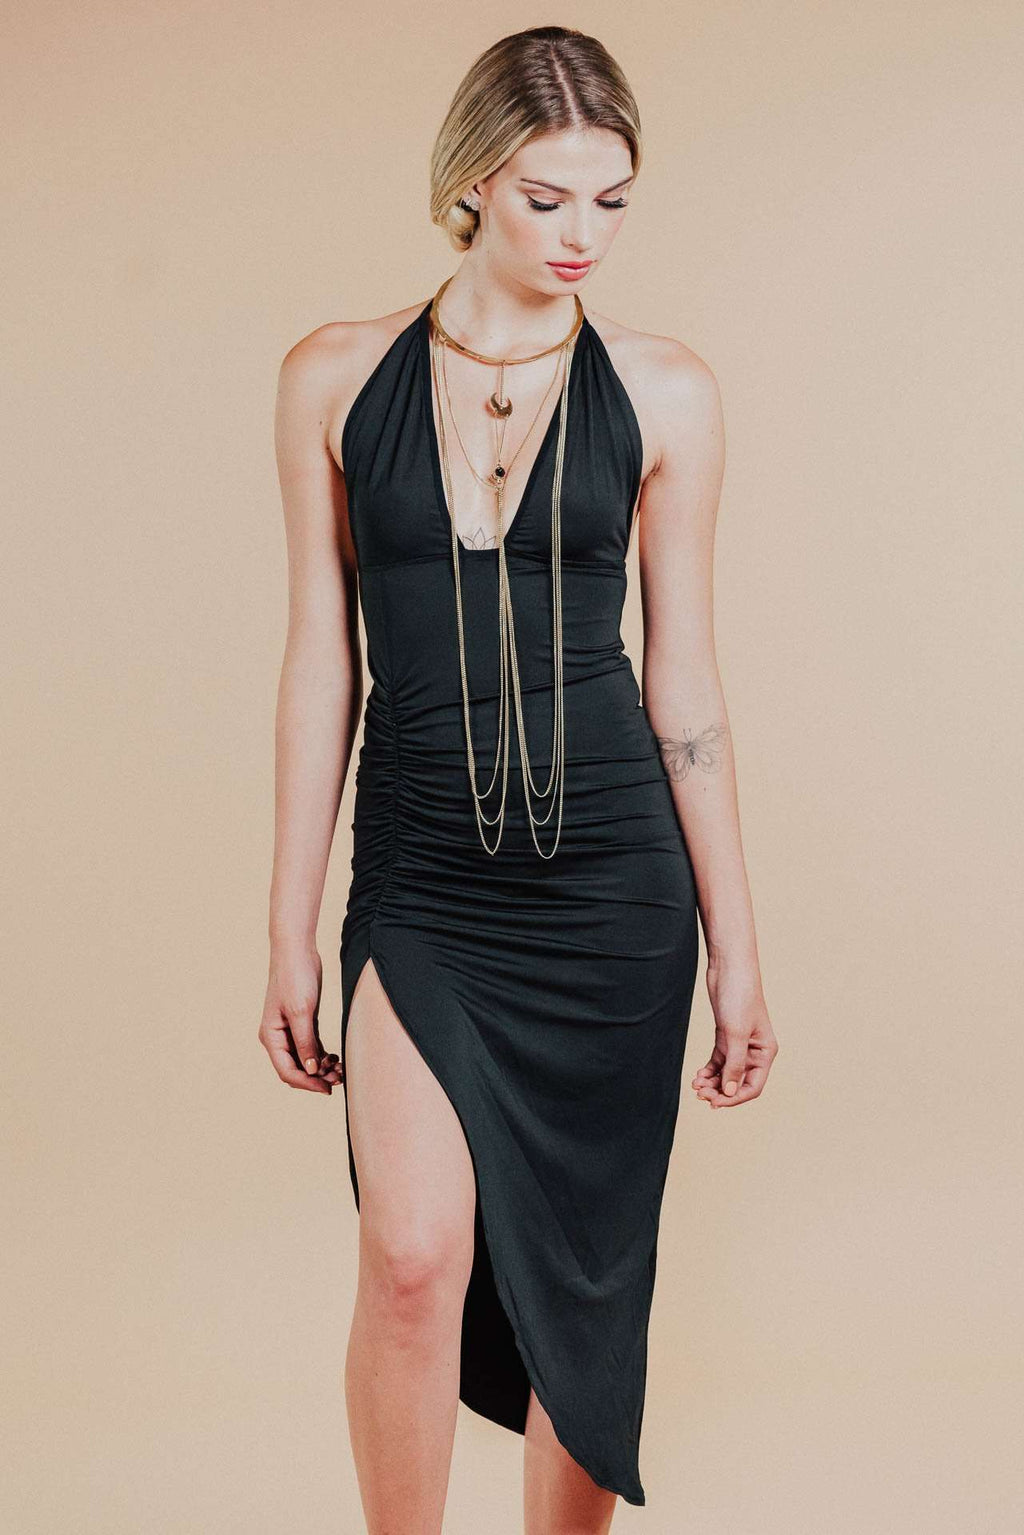 After Midnight Black Dress,Women - Apparel - Dresses